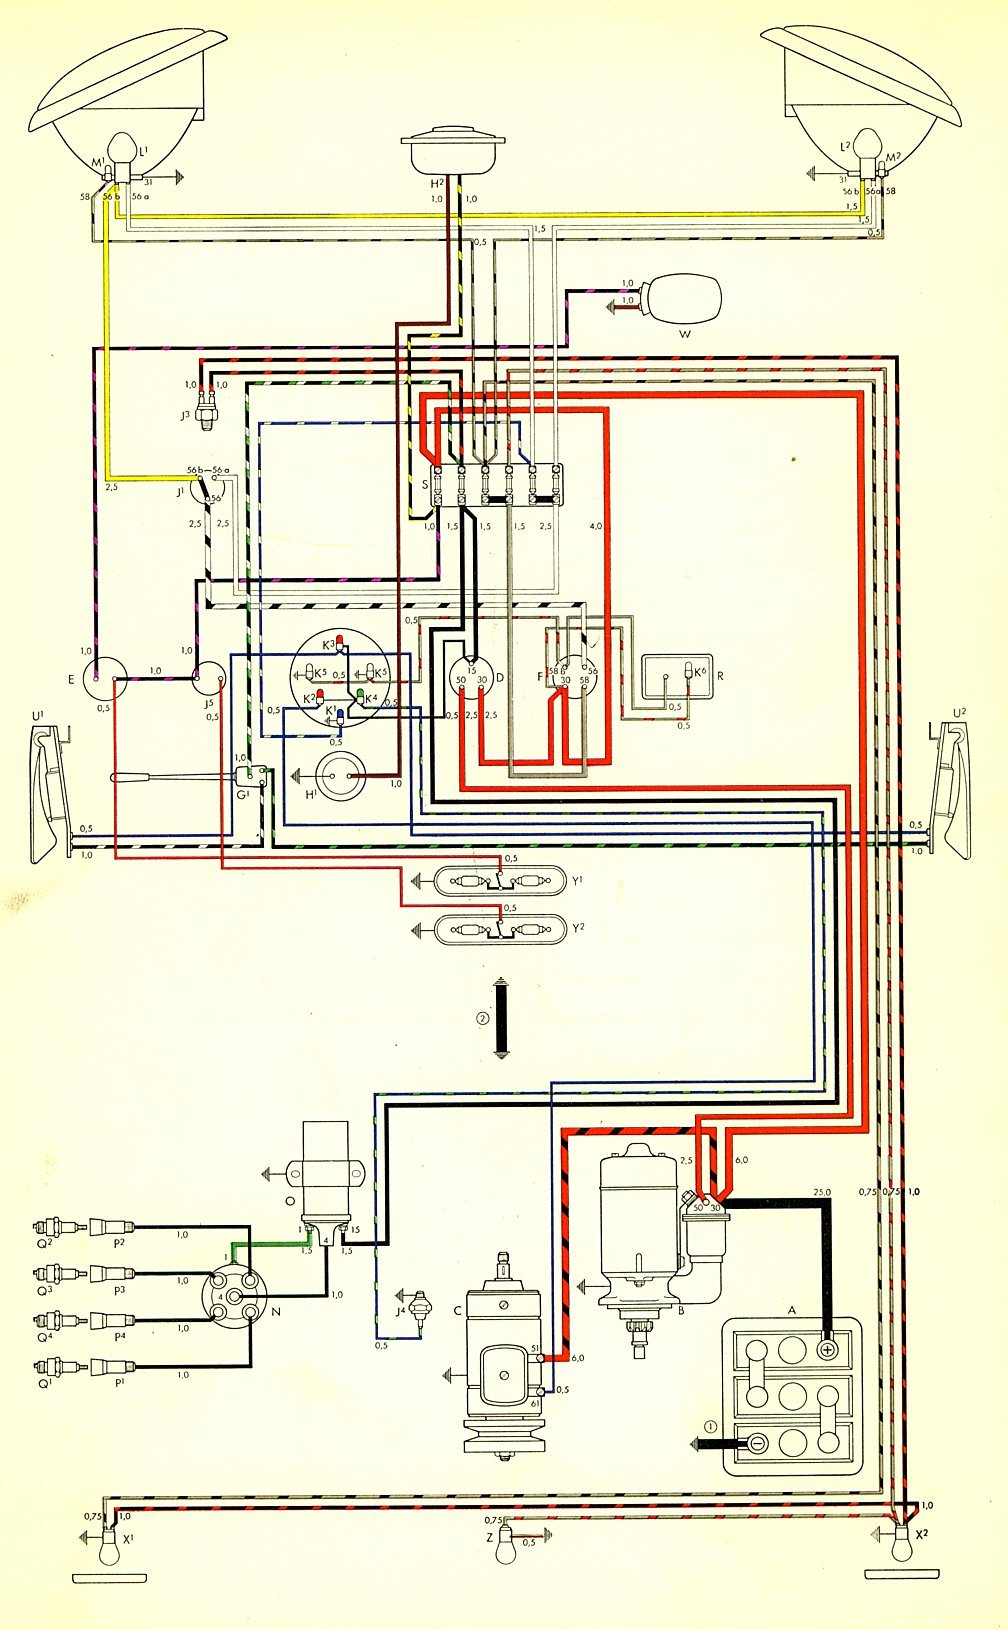 bus_59 bus wiring diagram vw wiring harness diagram \u2022 wiring diagrams j Volkswagen Type 2 Wiring Harness at mifinder.co